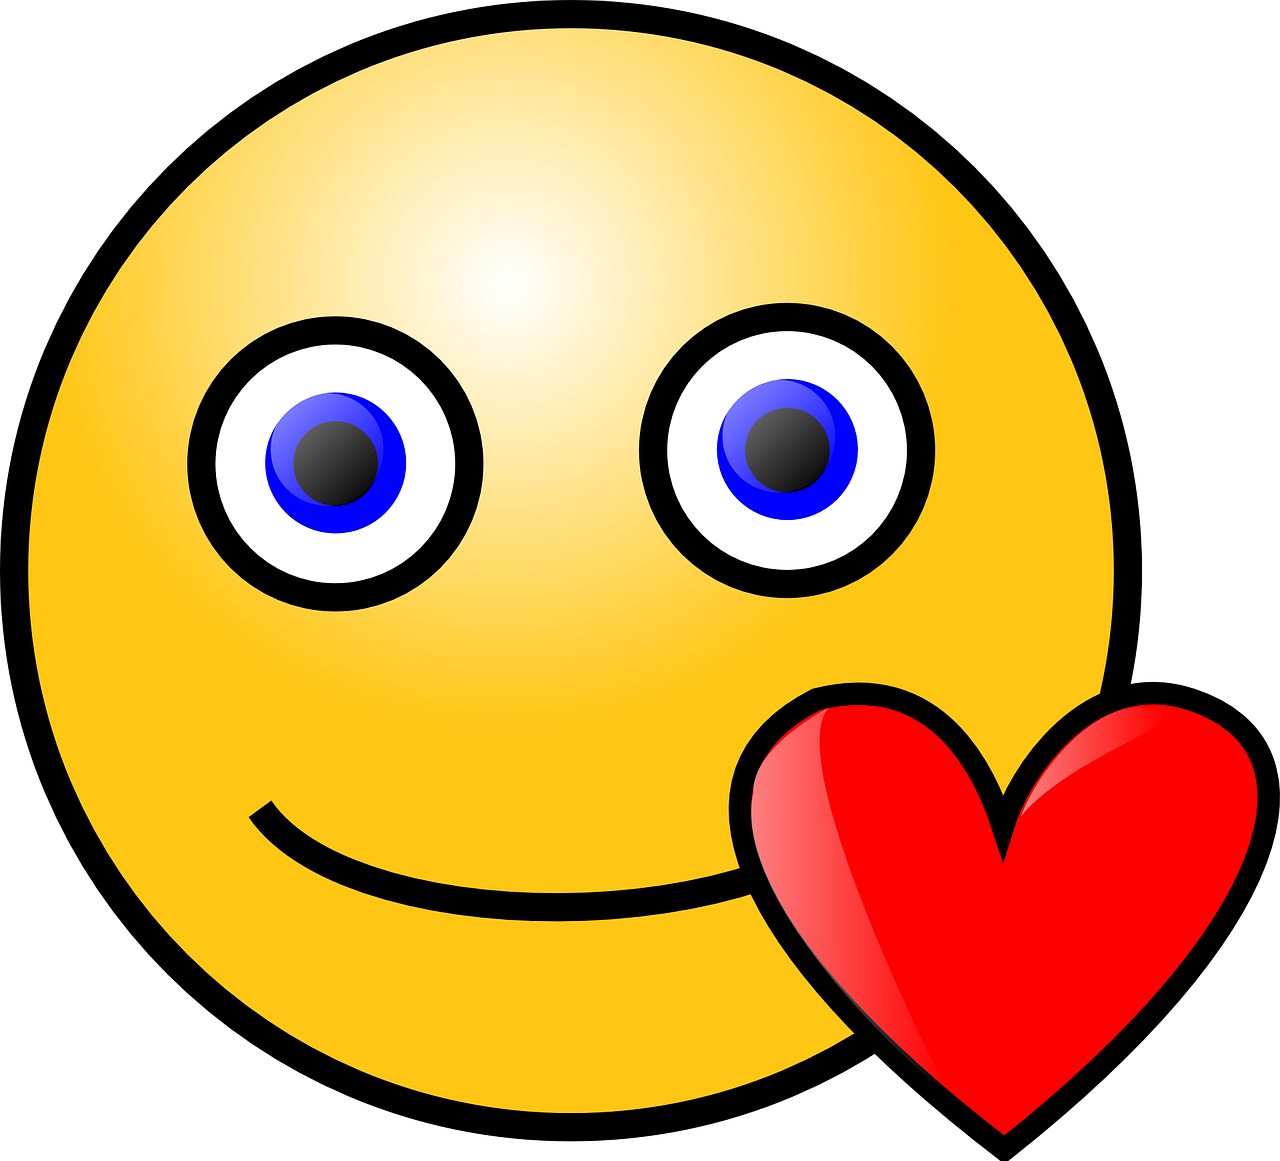 smiley,love,heart,red,romantic,romance,expressions,emotions,yellow,face,head,valentine,free vector graphics,free pictures, free photos, free images, royalty free, free illustrations, public domain